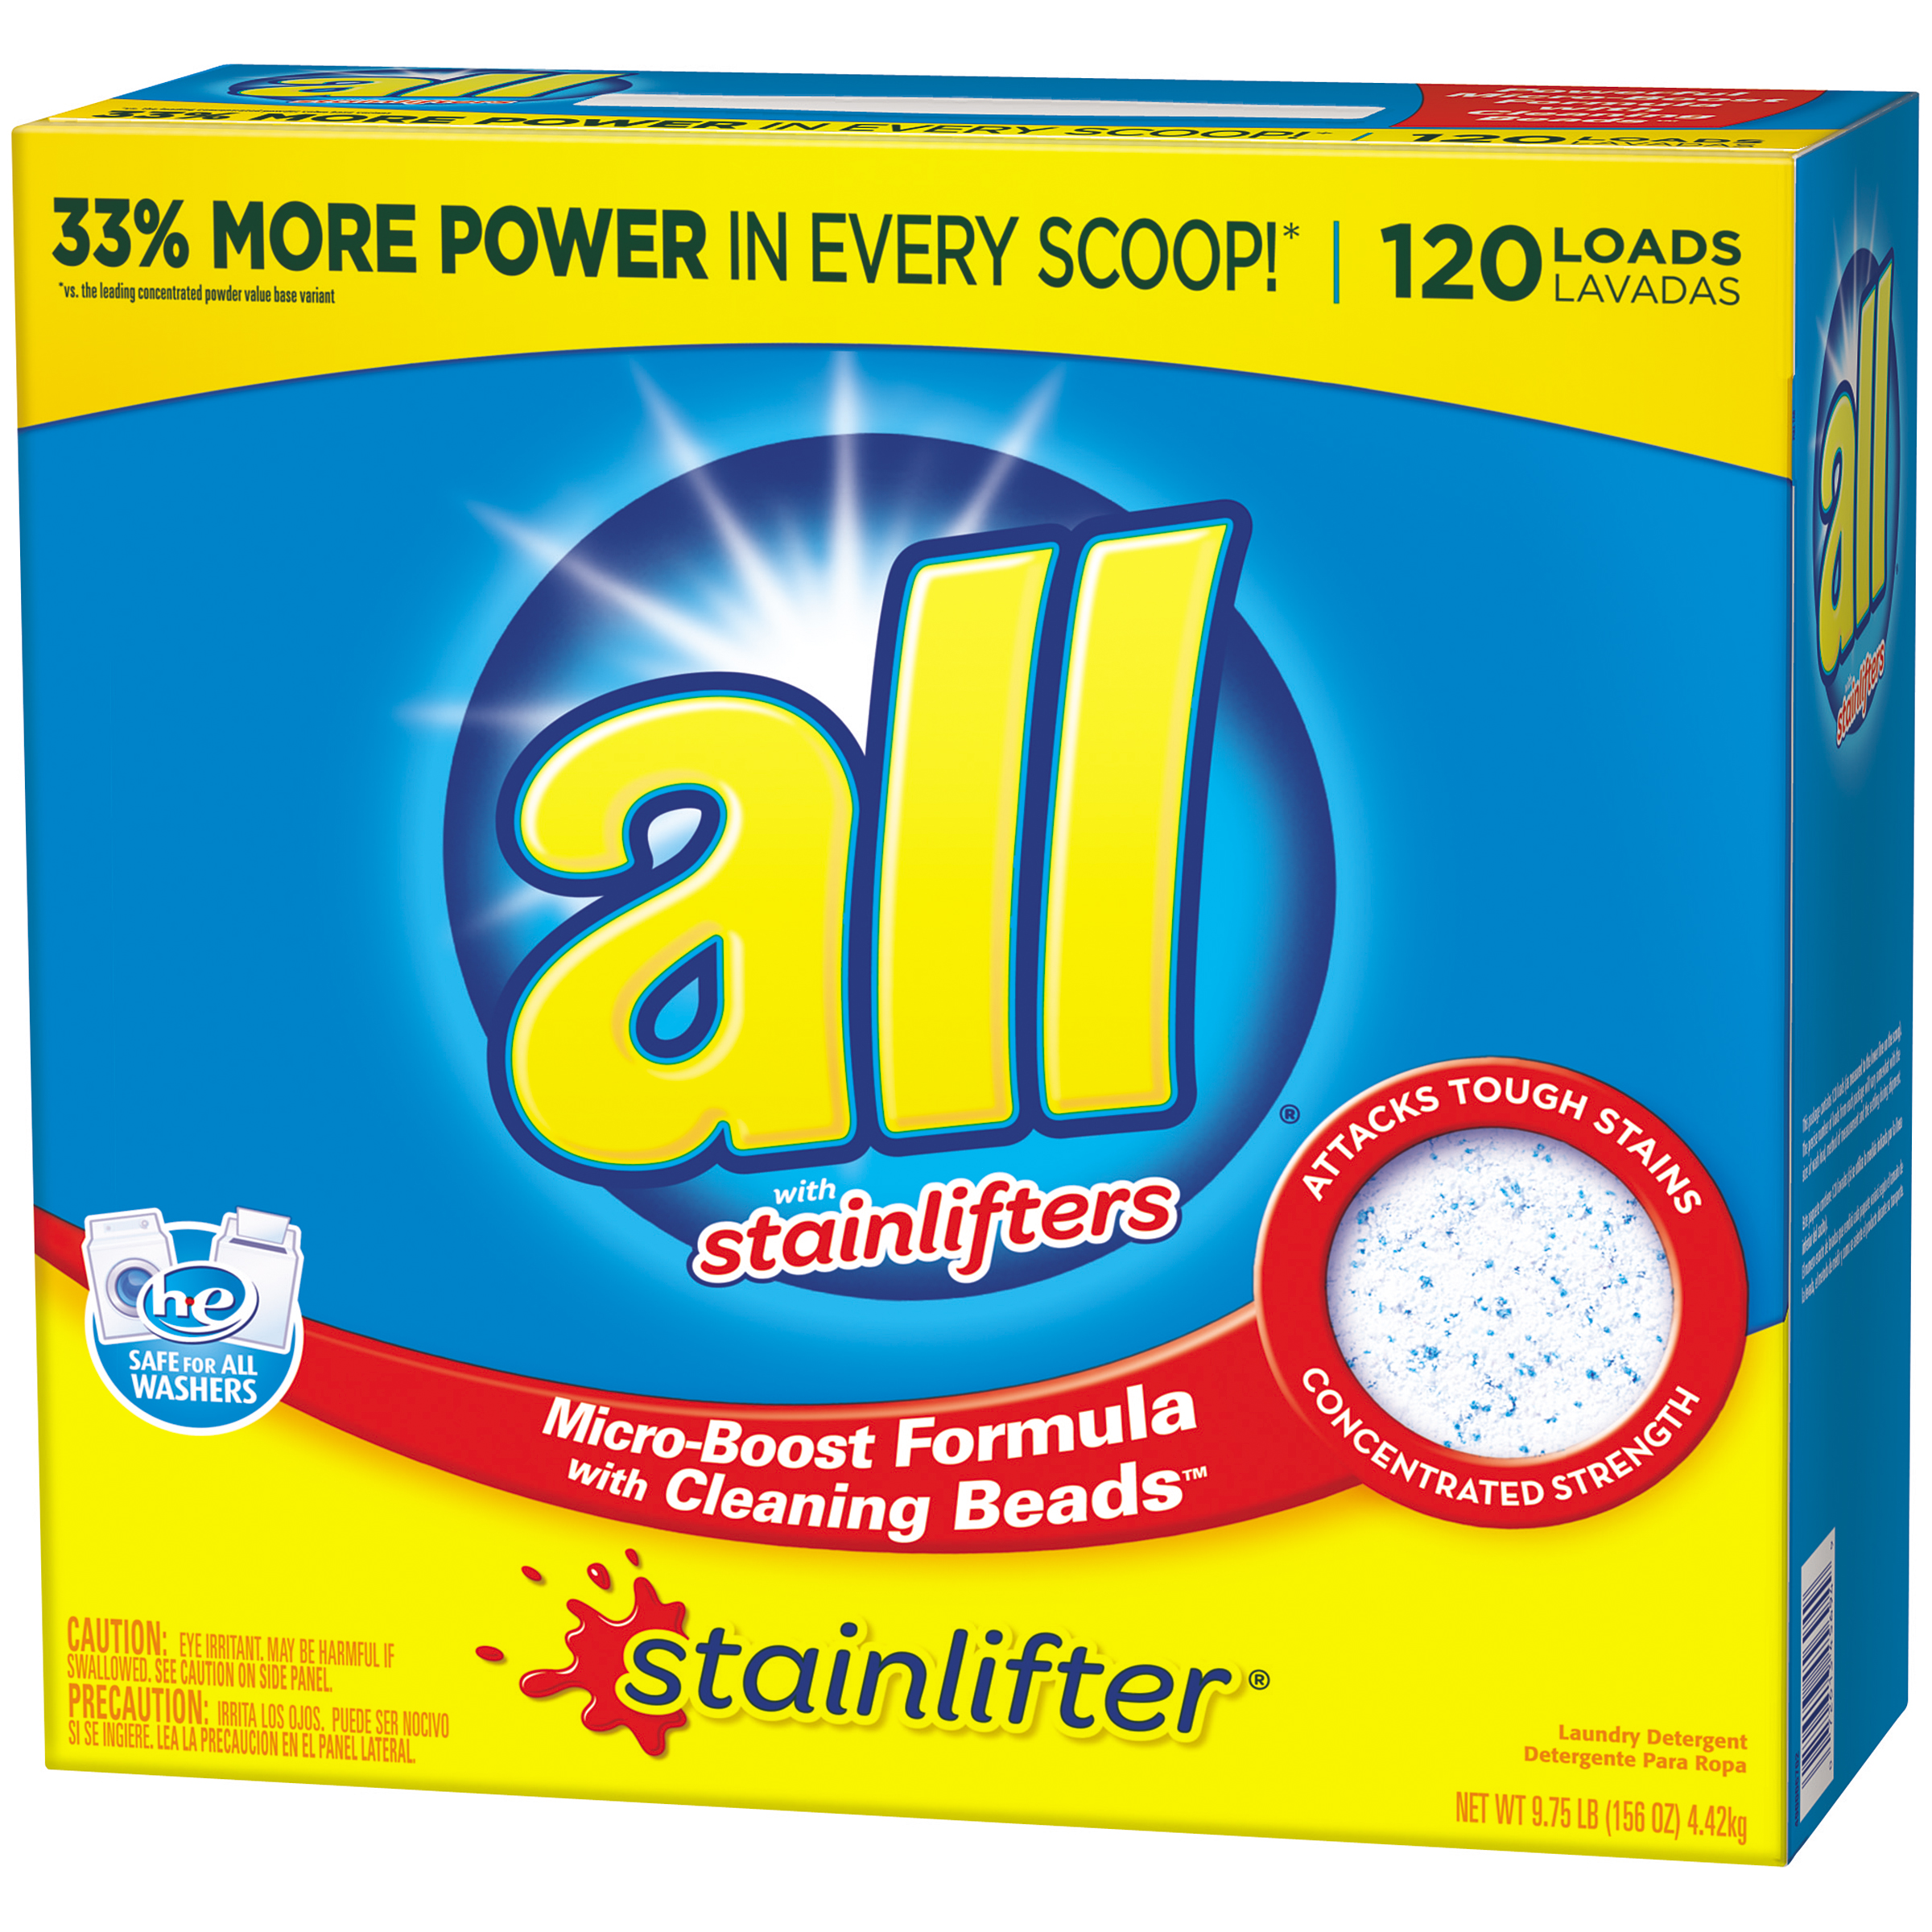 all Stainlifter Powder Laundry Detergent, 156 Ounce, 120 Loads